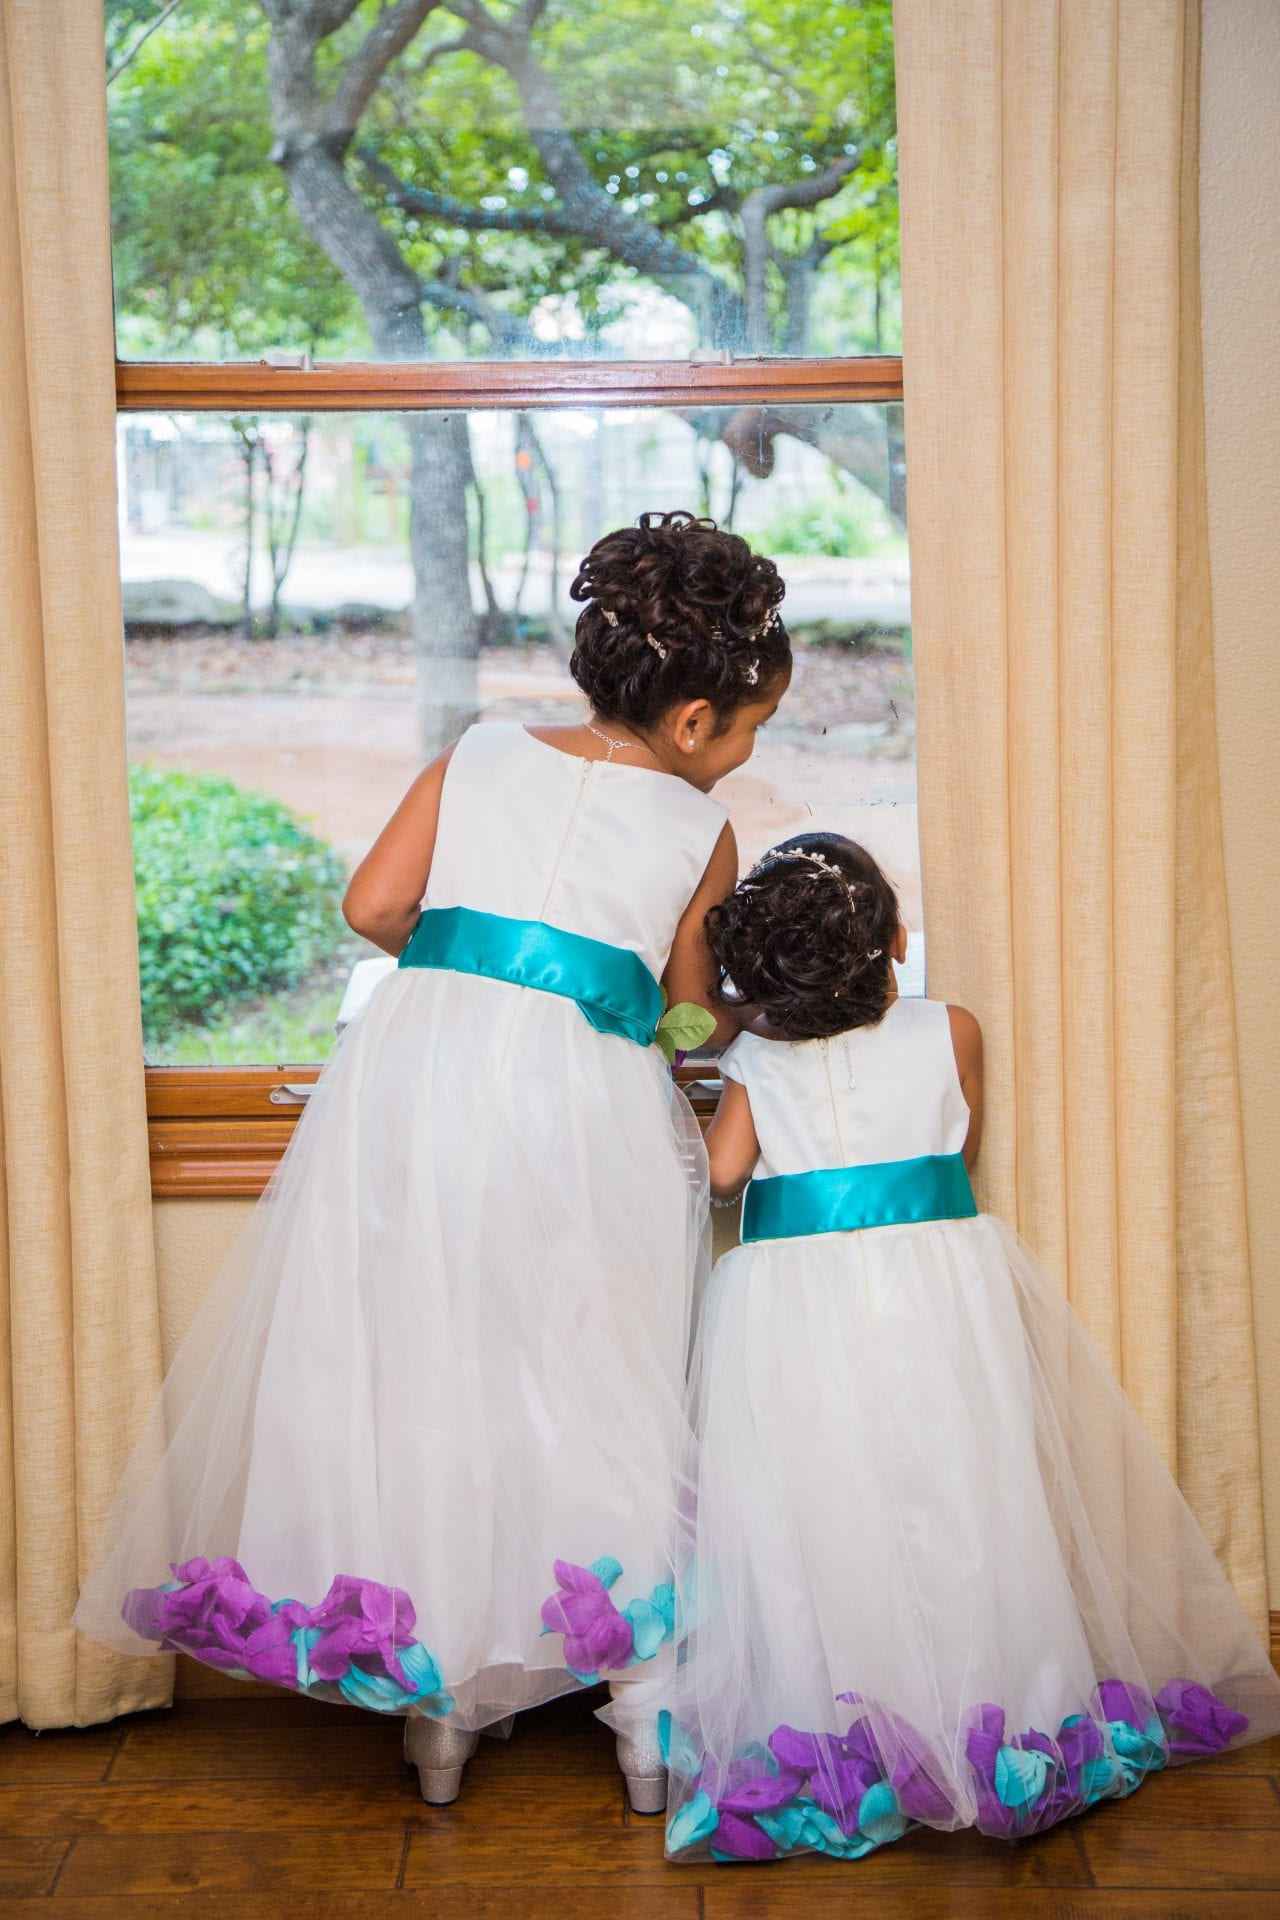 Alex and Adrien Wedding at The Gardens at Old Town little girls